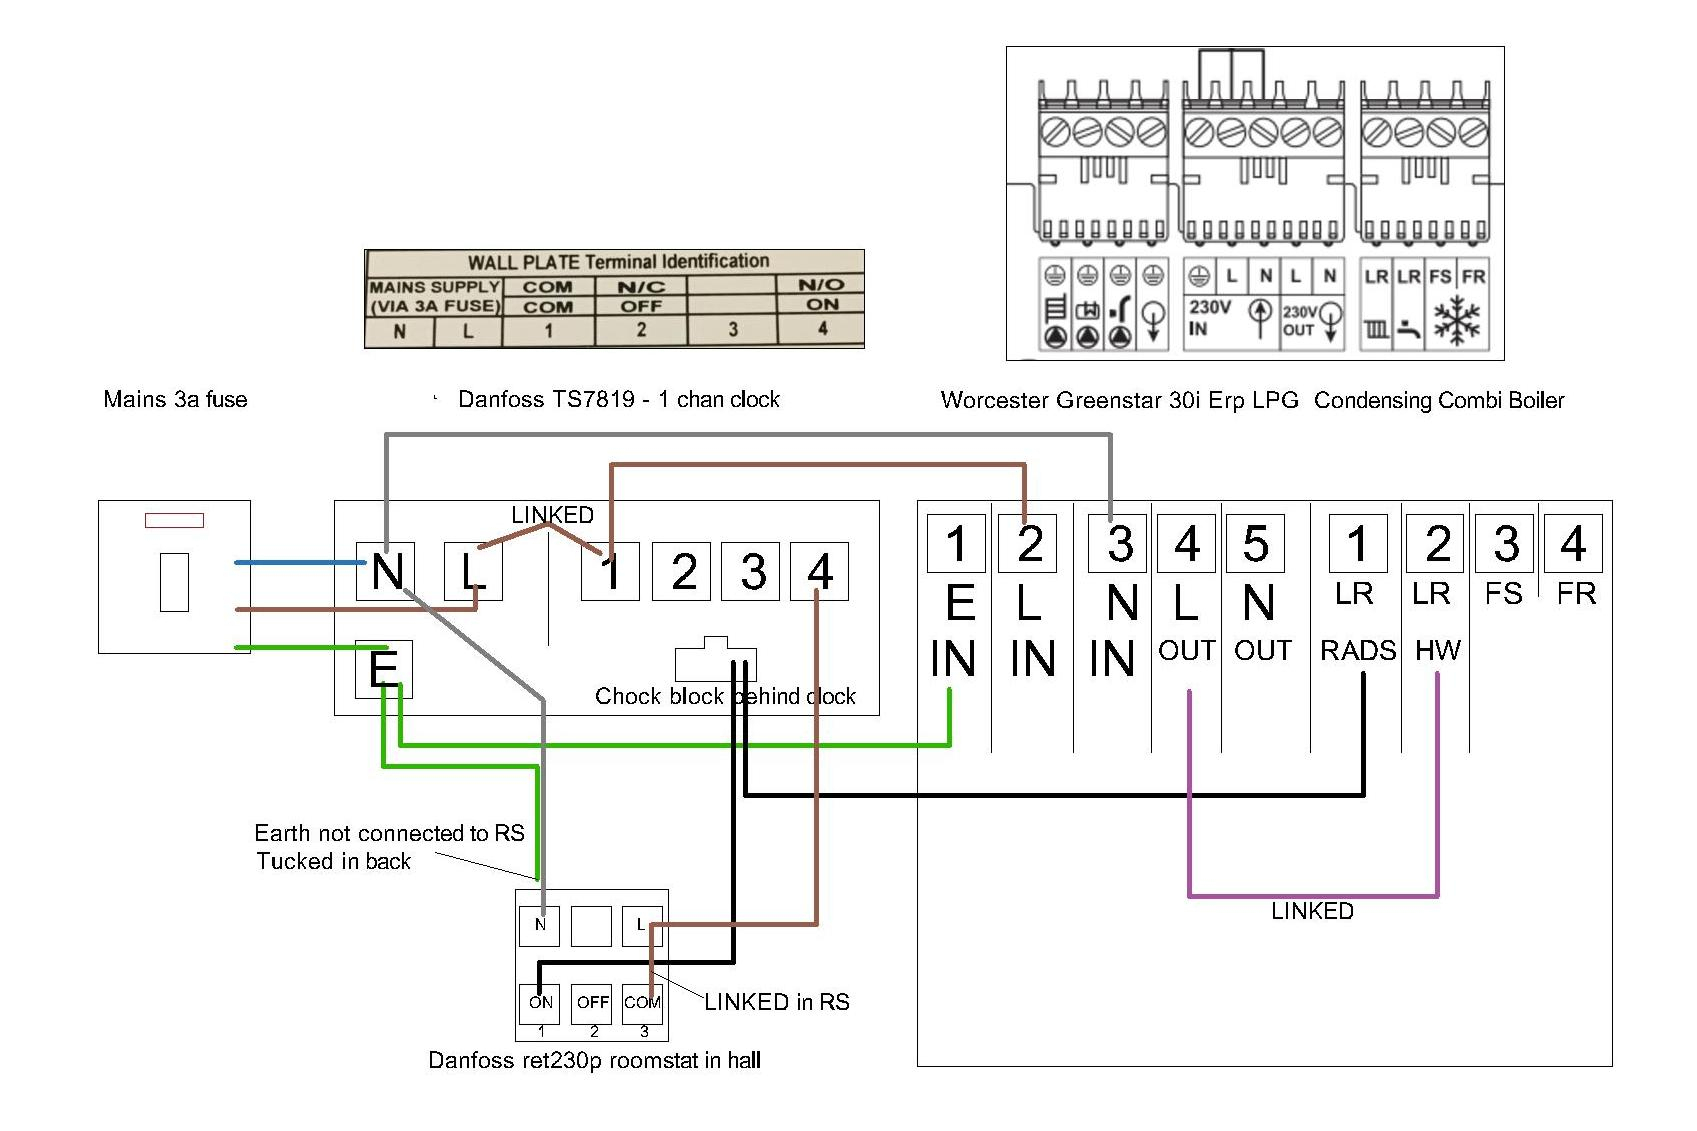 Current Boiler Diagram And Looking To Go Nest. | Diynot Forums - Nest Heat Link Wiring Diagram Combi Boiler